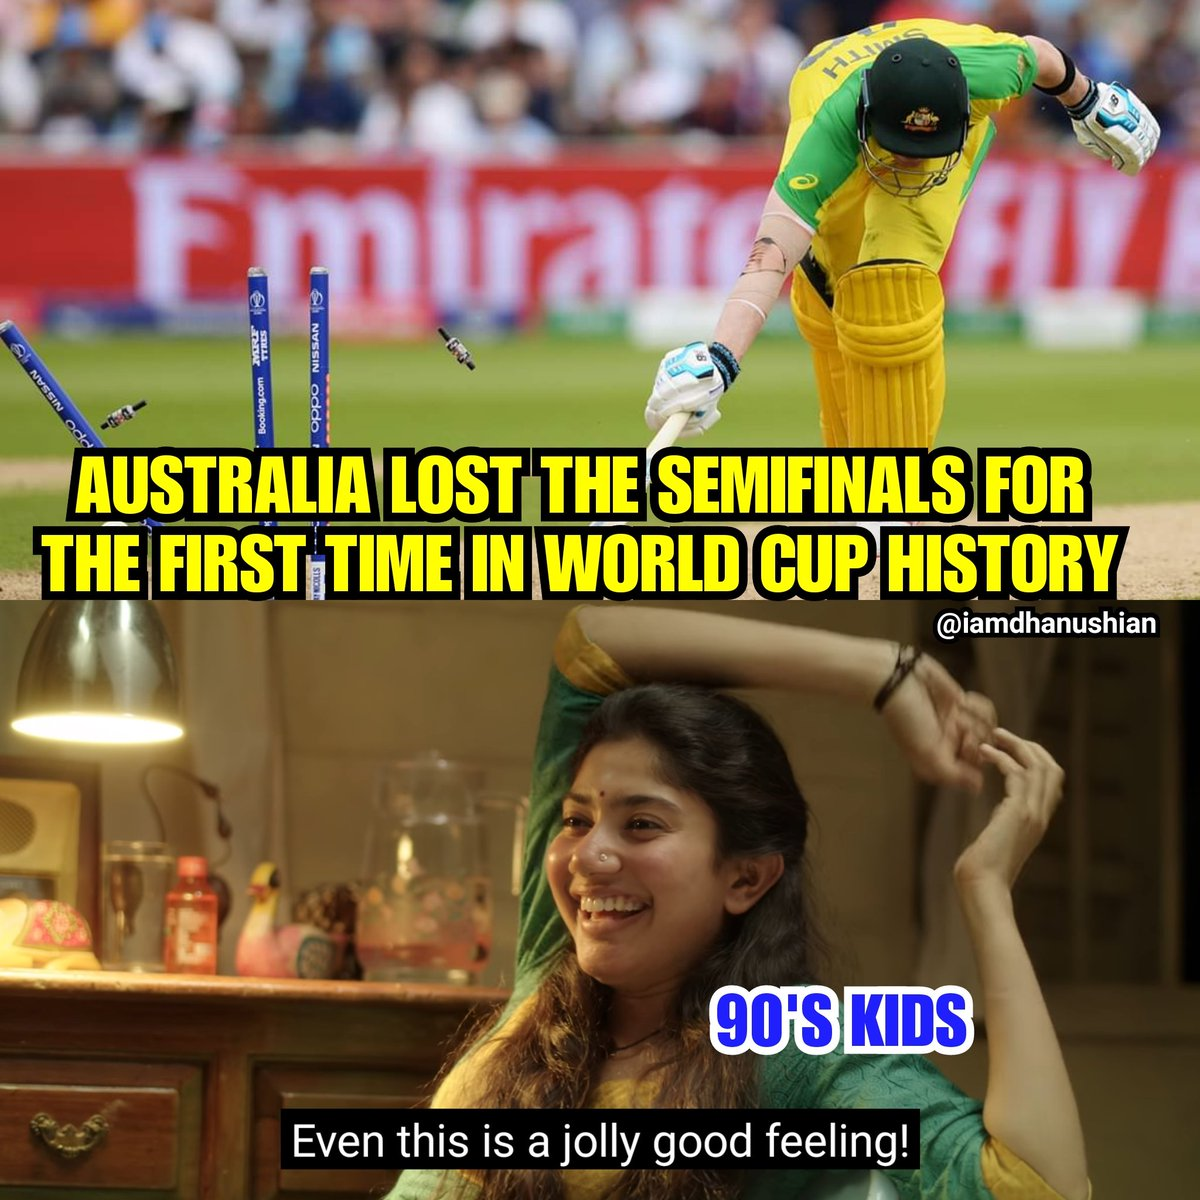 Well played both teams#ENGvAUS